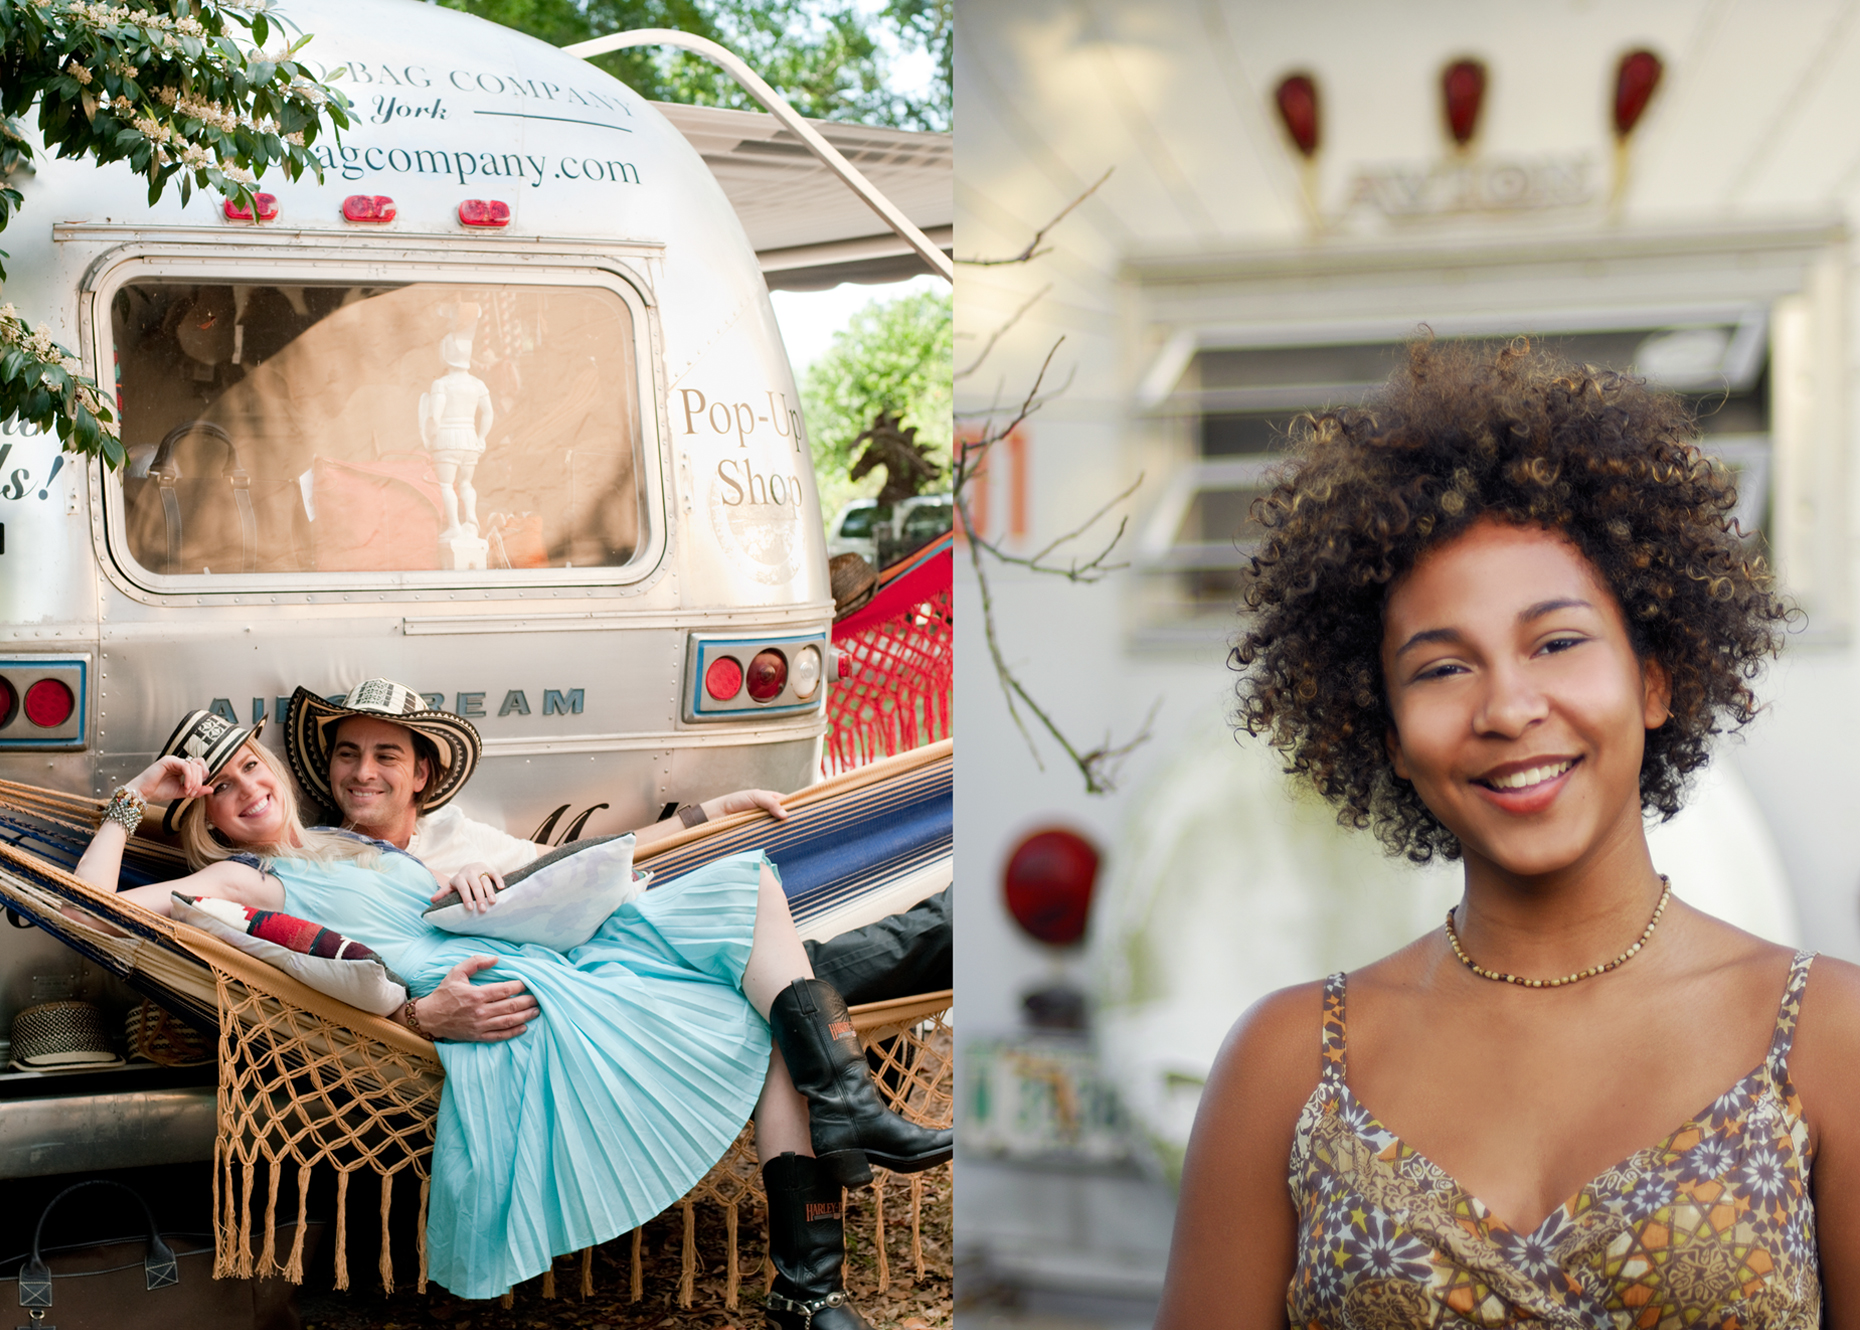 airstream_people.jpg